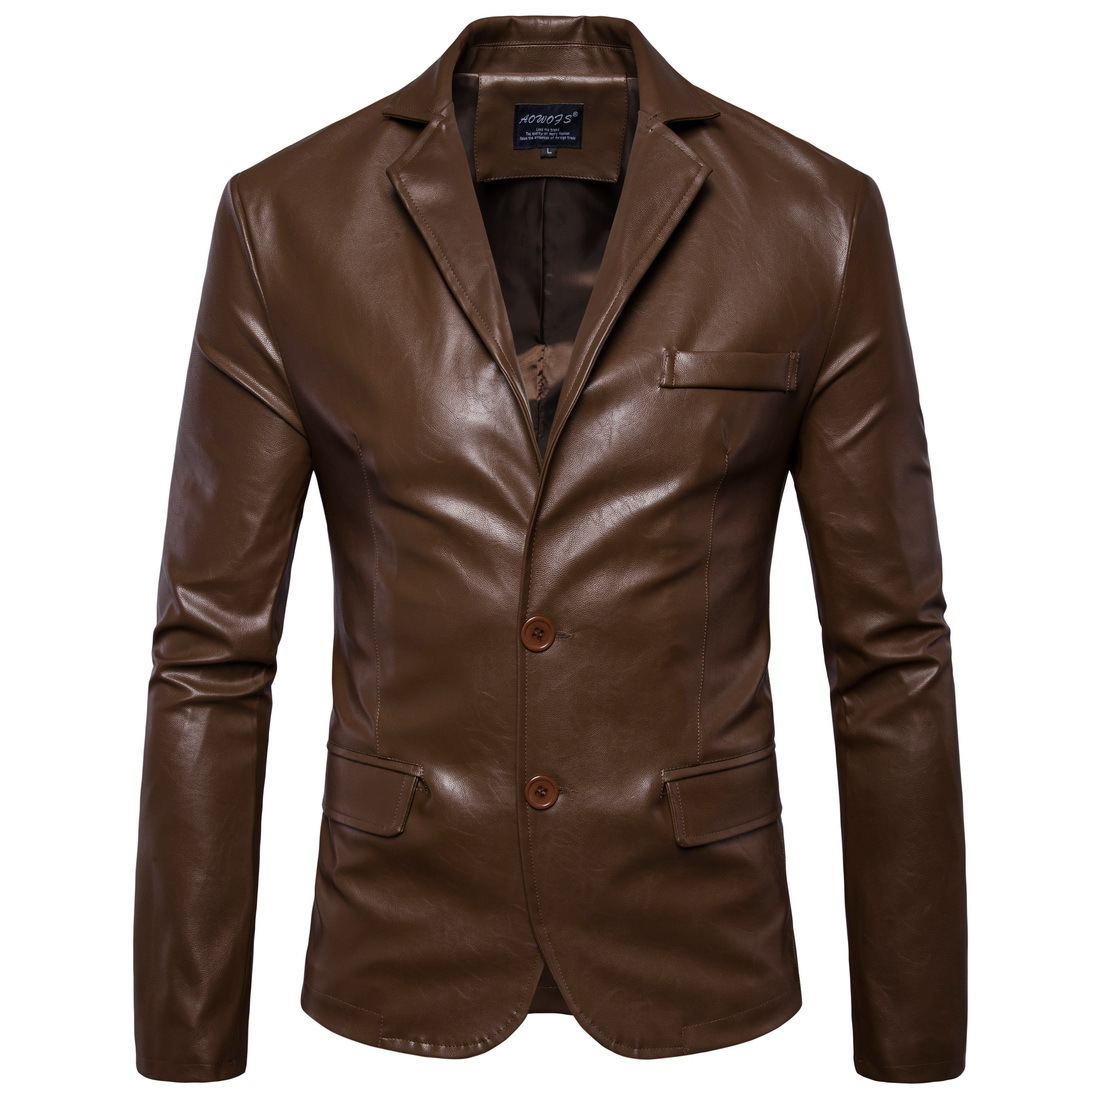 [Code] European Large Size Men'S Wear Locomotive Leather Coat 2018 Autumn And Winter New Style Men Casual Leather Jacket